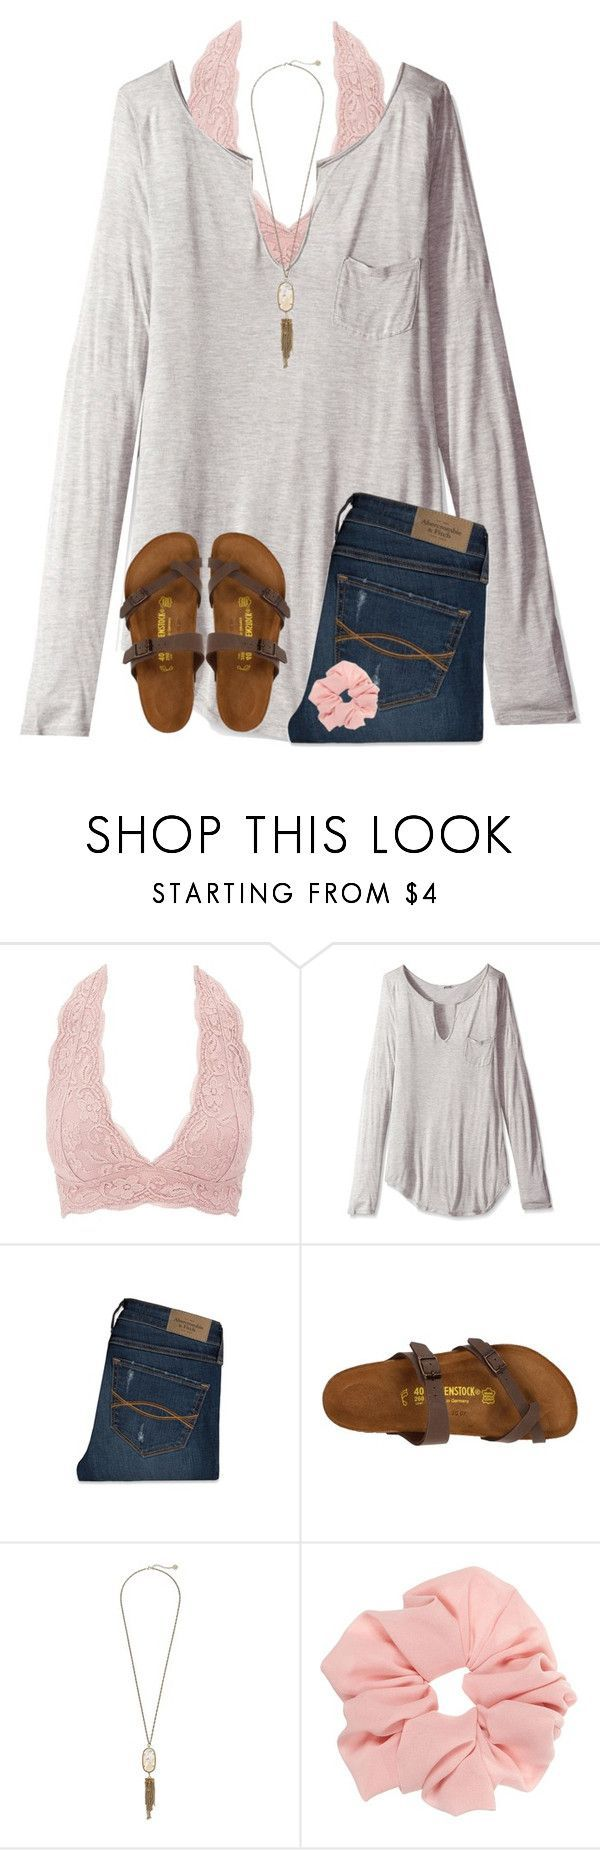 """""""Favorite trends from 2016 contest"""" by ponyboysgirlfriend ❤ liked on Polyvore featuring Charlotte Russe, LAmade, Abercrombie & Fitch, Birkenstock and Kendra Scott- Tap the link now to see our super collection of accessories made just for you!"""